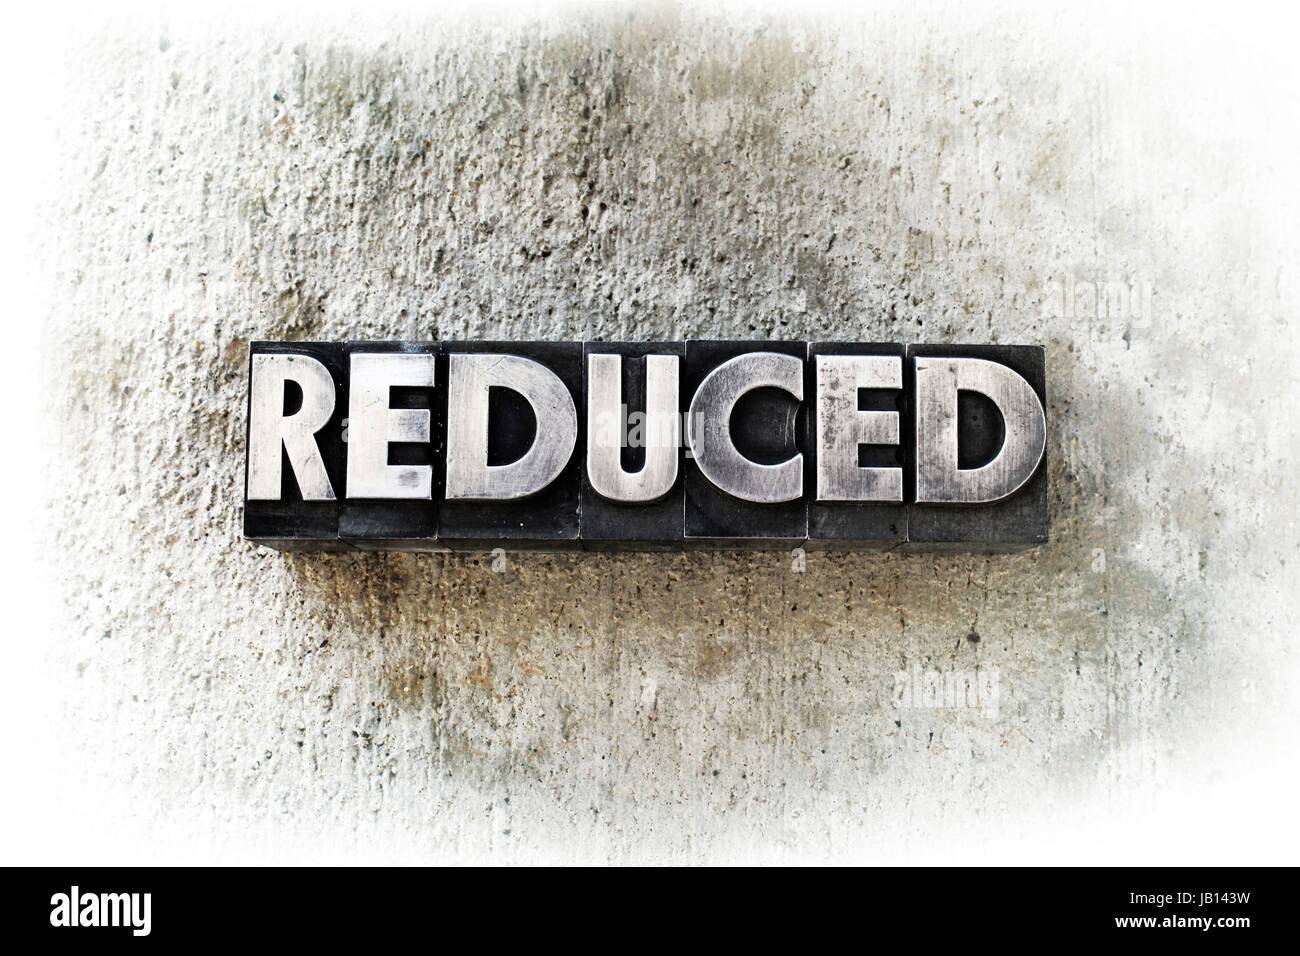 The word 'REDUCED' written in old vintage letterpress type. - Stock Image